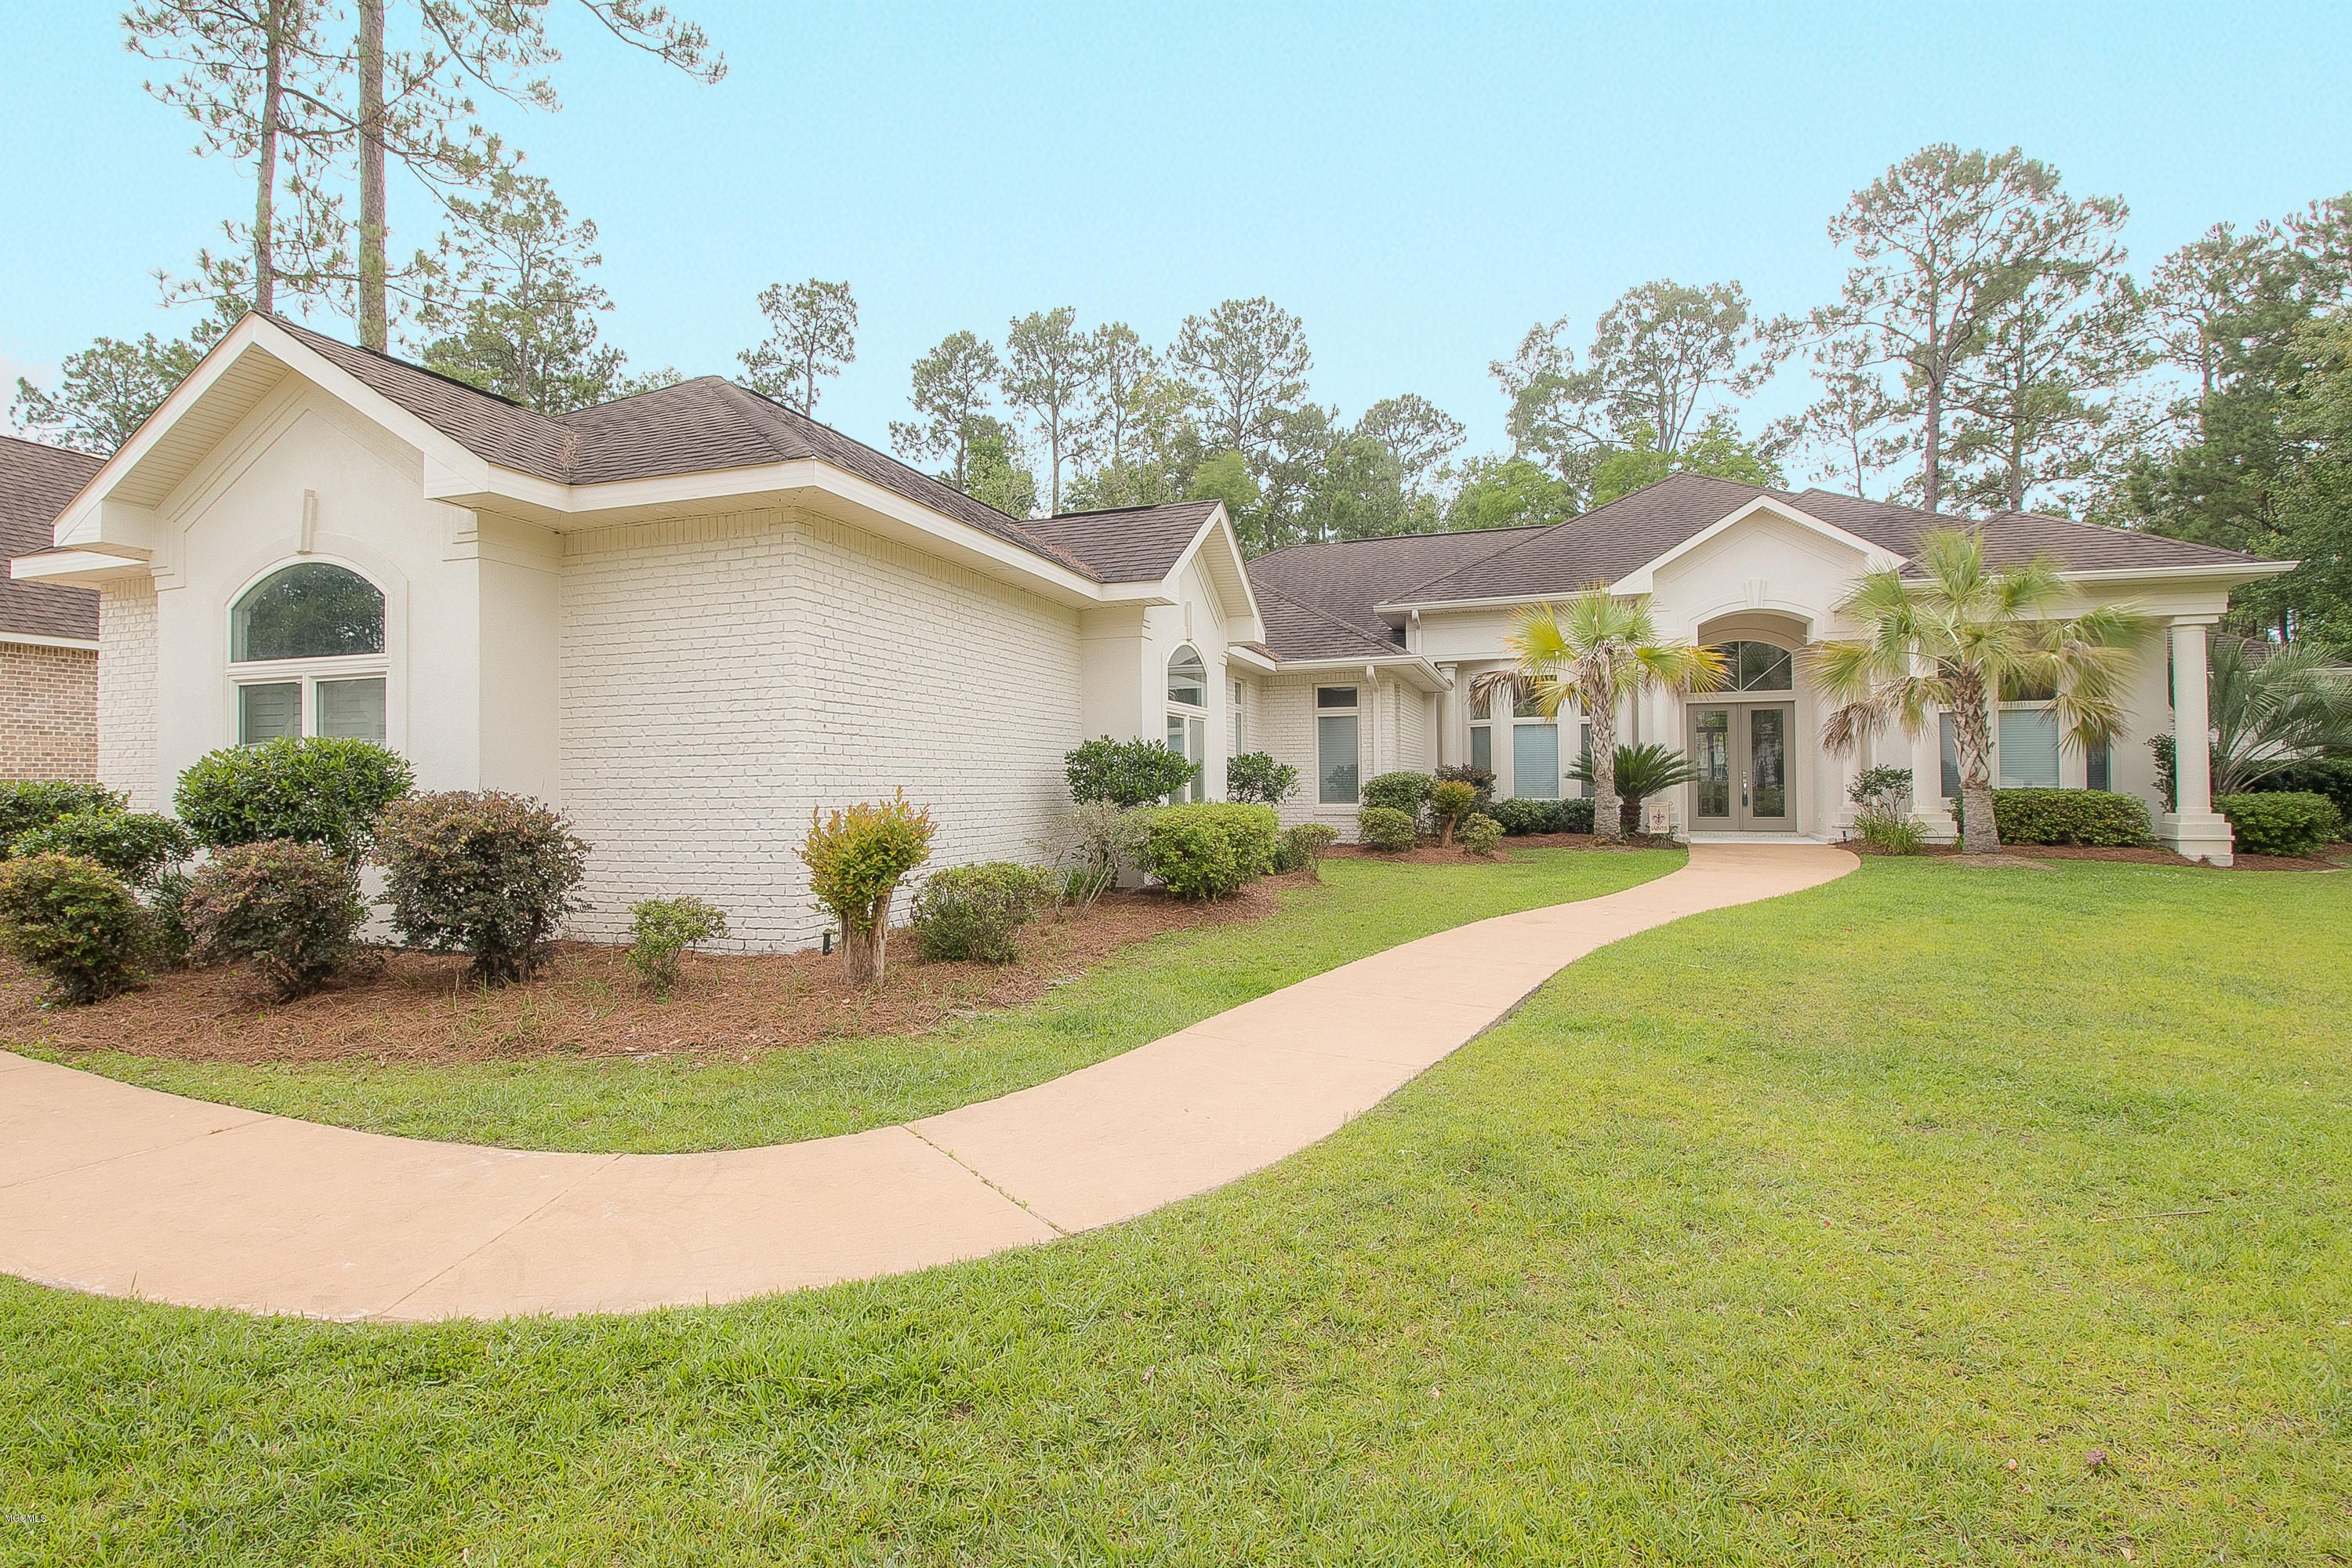 7459 Turnberry Dr Diamondhead Ms 39525 Waterfront Homes